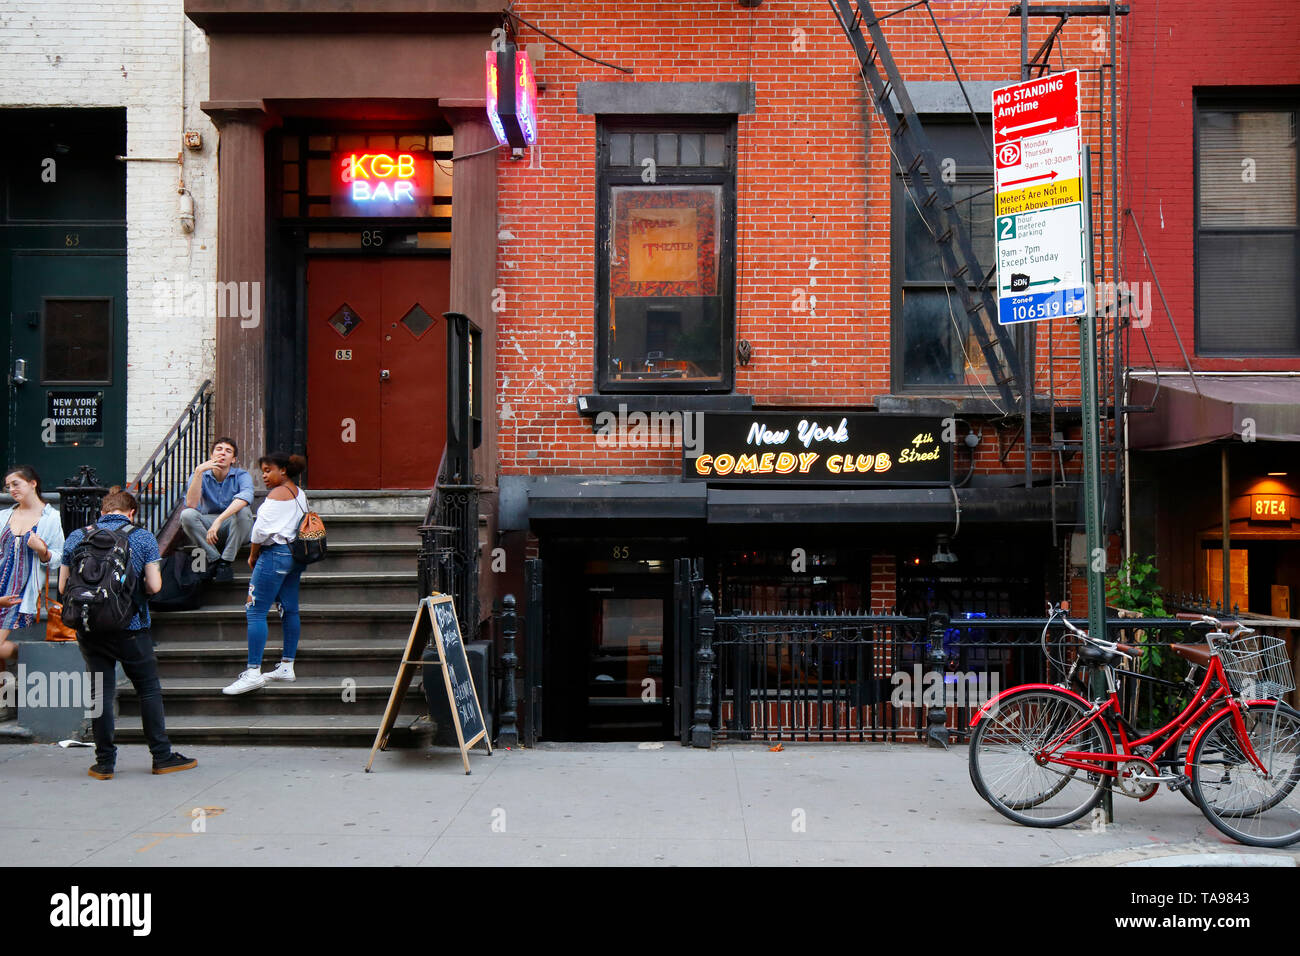 The Red Room, KGB Bar, New York Comedy Club, 85 E 4th St, New York, NY - Stock Image